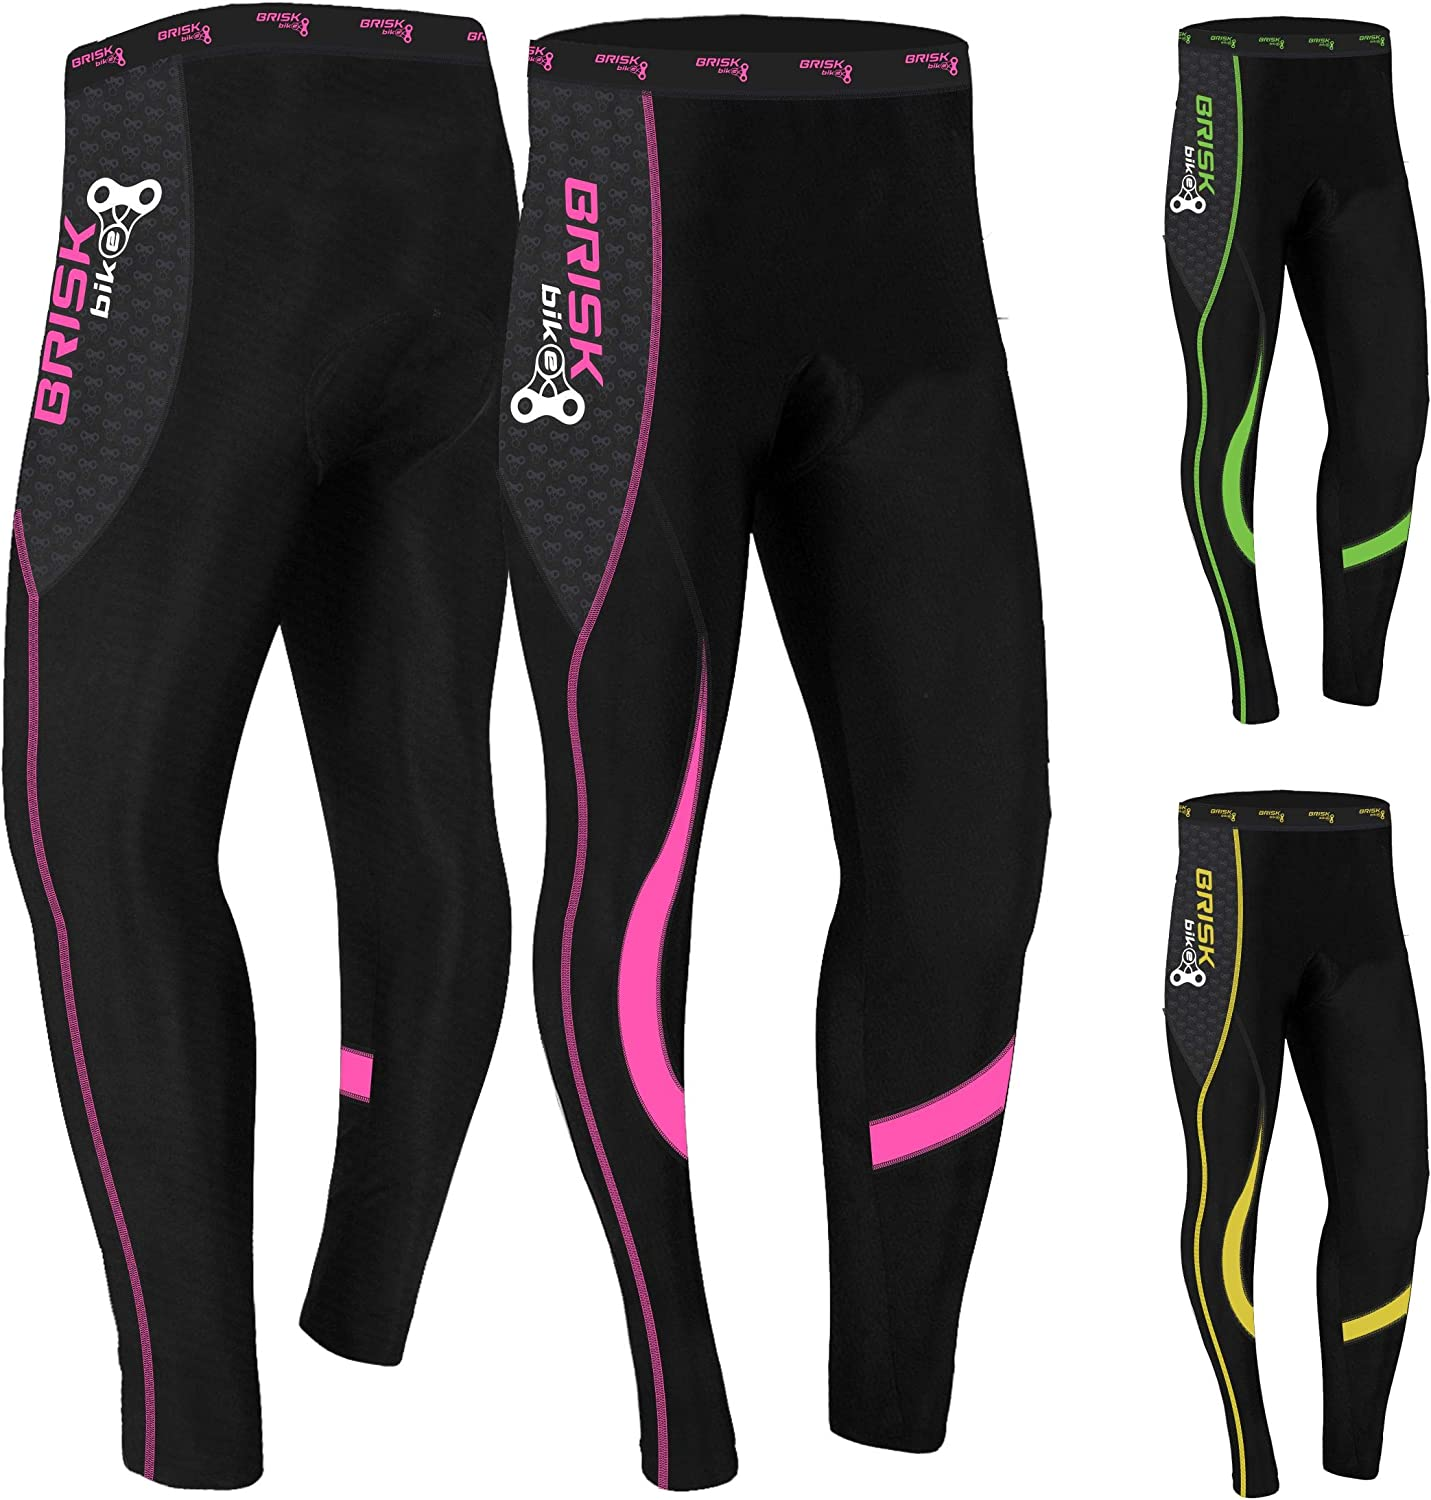 Brisk アイテム勢ぞろい Bike Cycling Trousers Tights Legg Compression Pants 新作通販 Padded